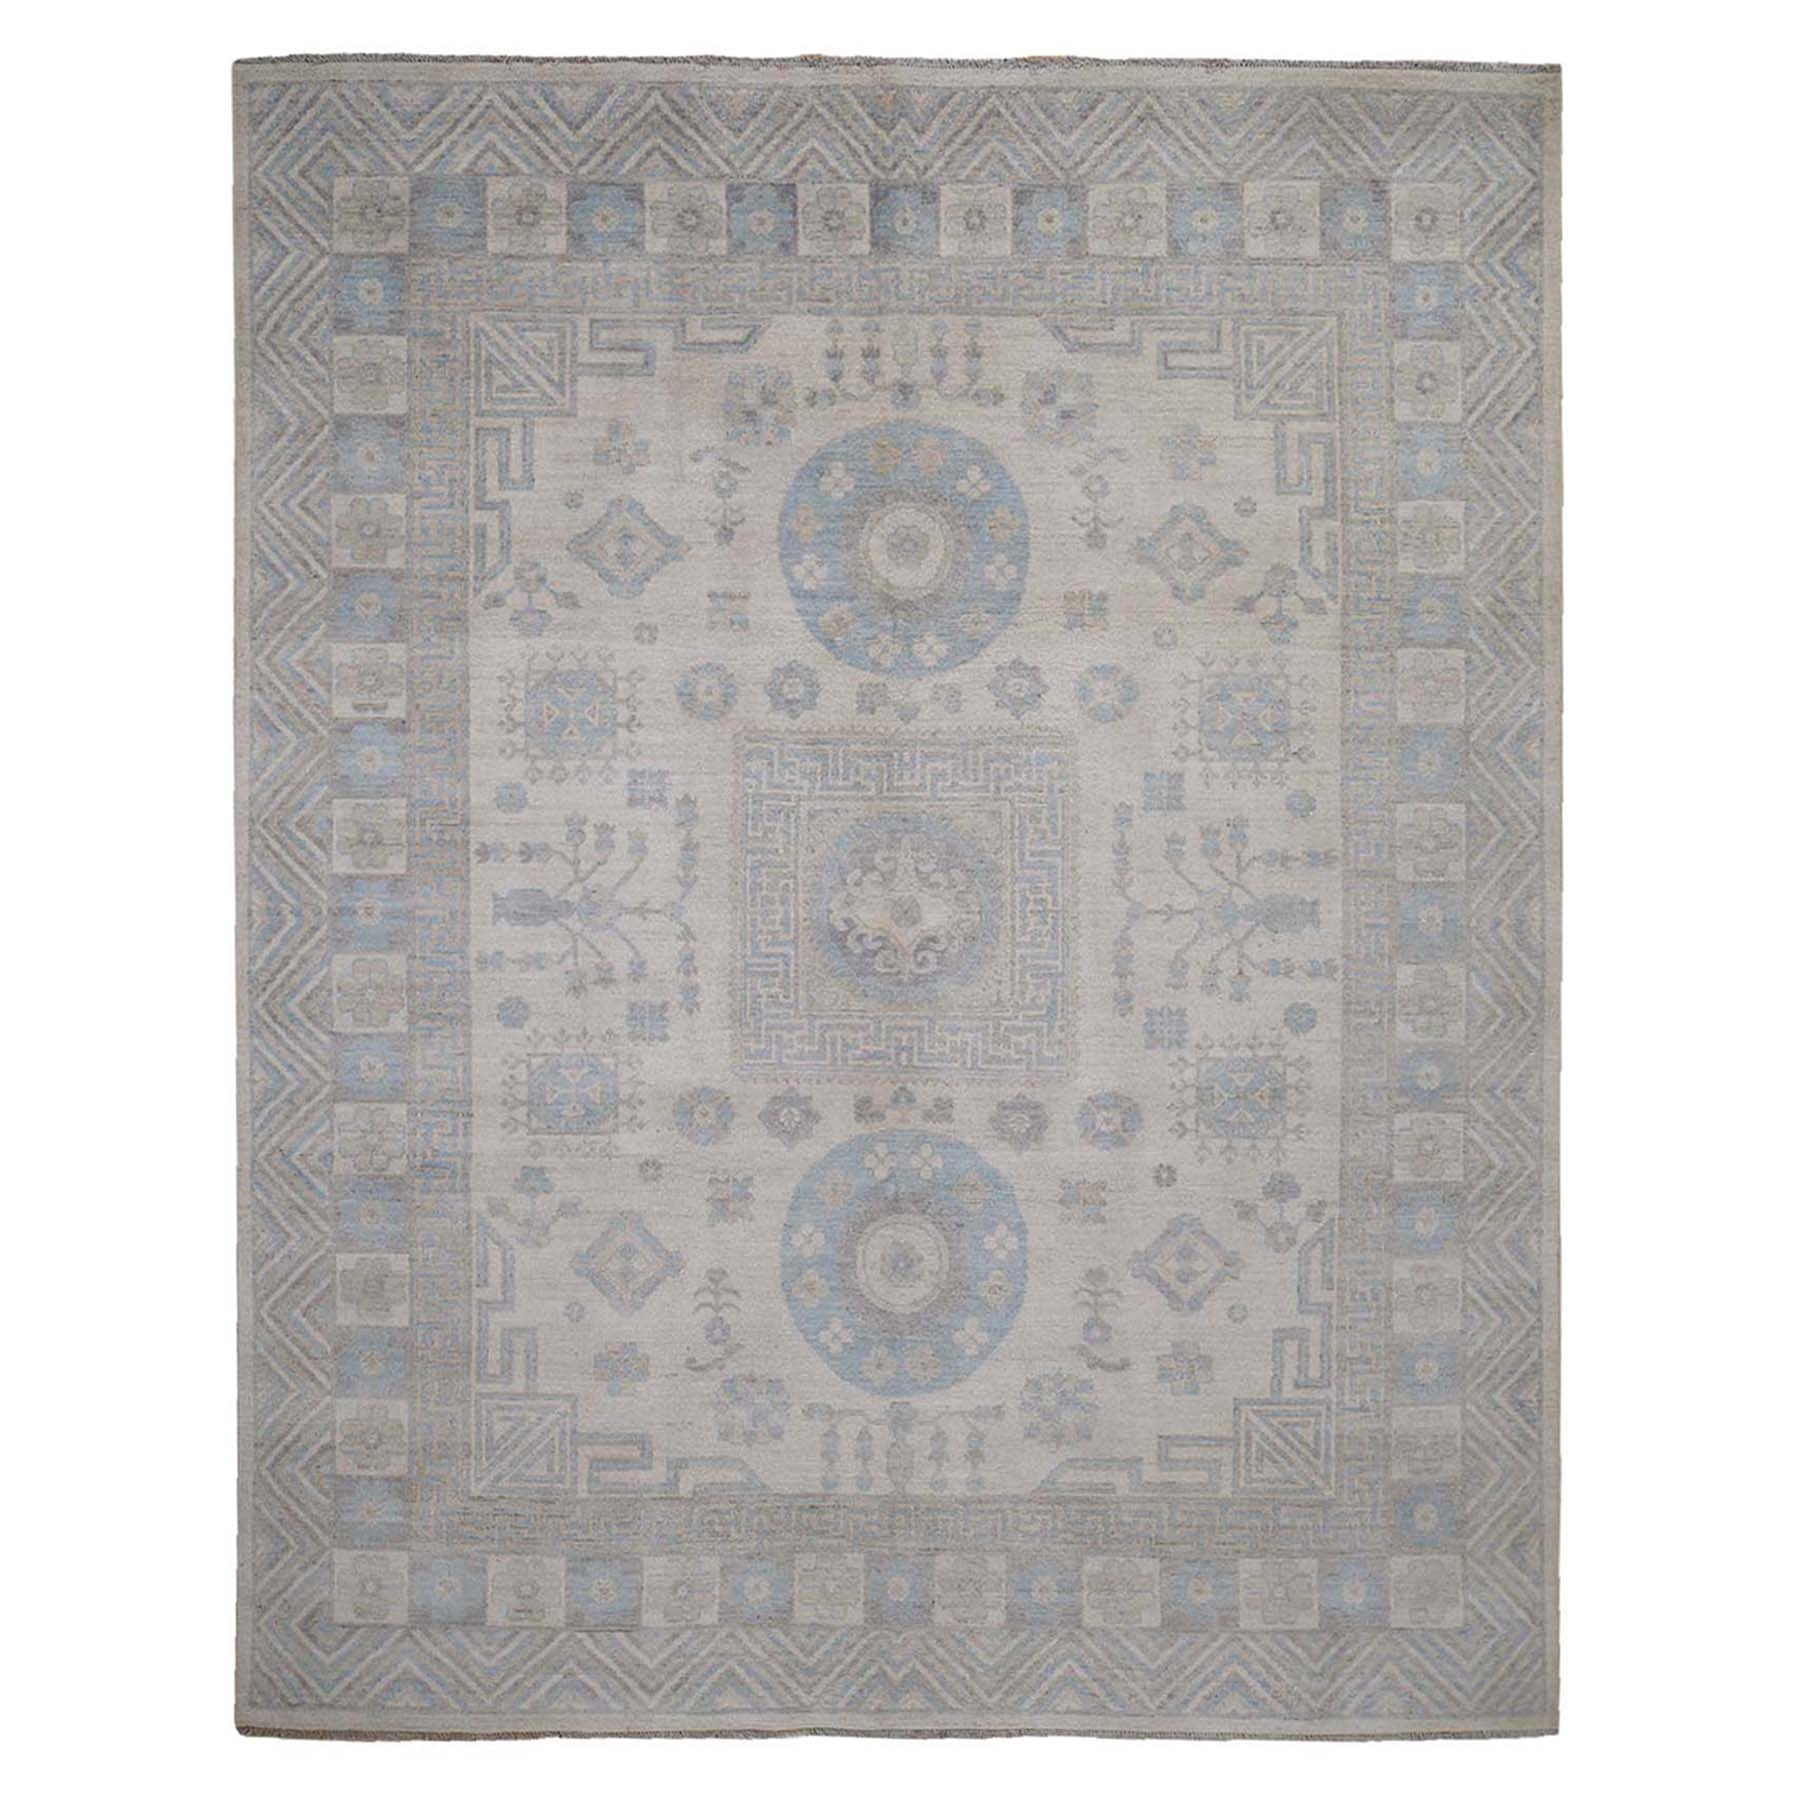 "8'1""X9'9"" Khotan Pure Wool Washed Out Hand-Knotted Oriental Rug moada86b"